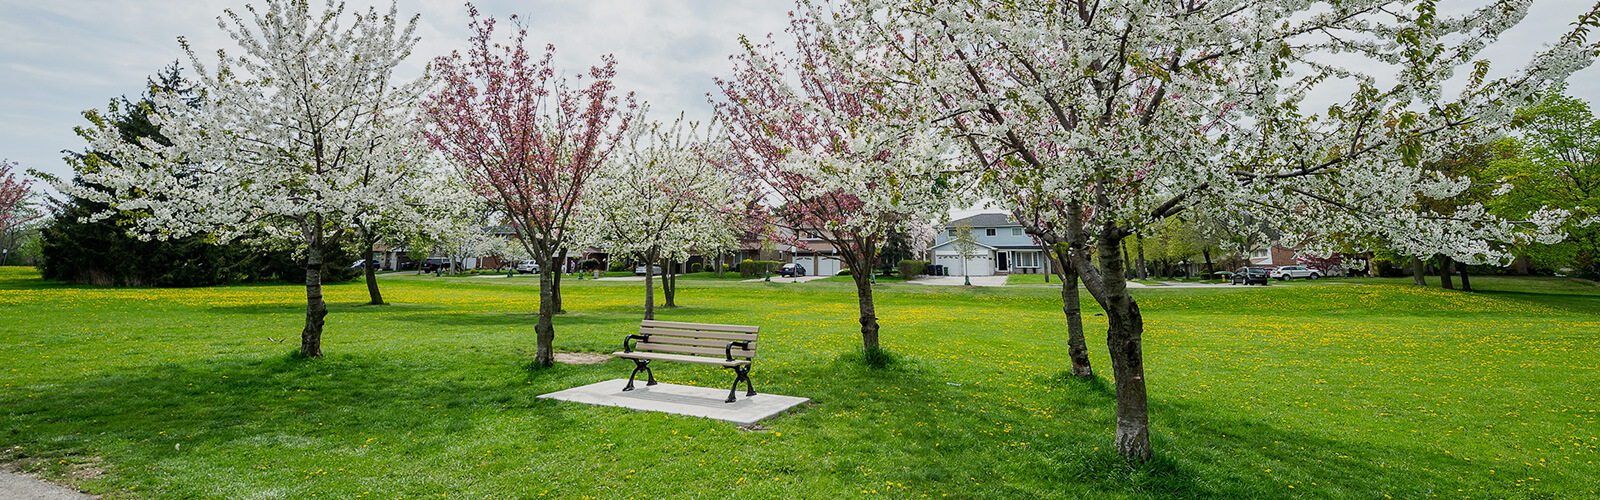 Maintained lawn with several white and pink blooming trees behind a beige park bench.